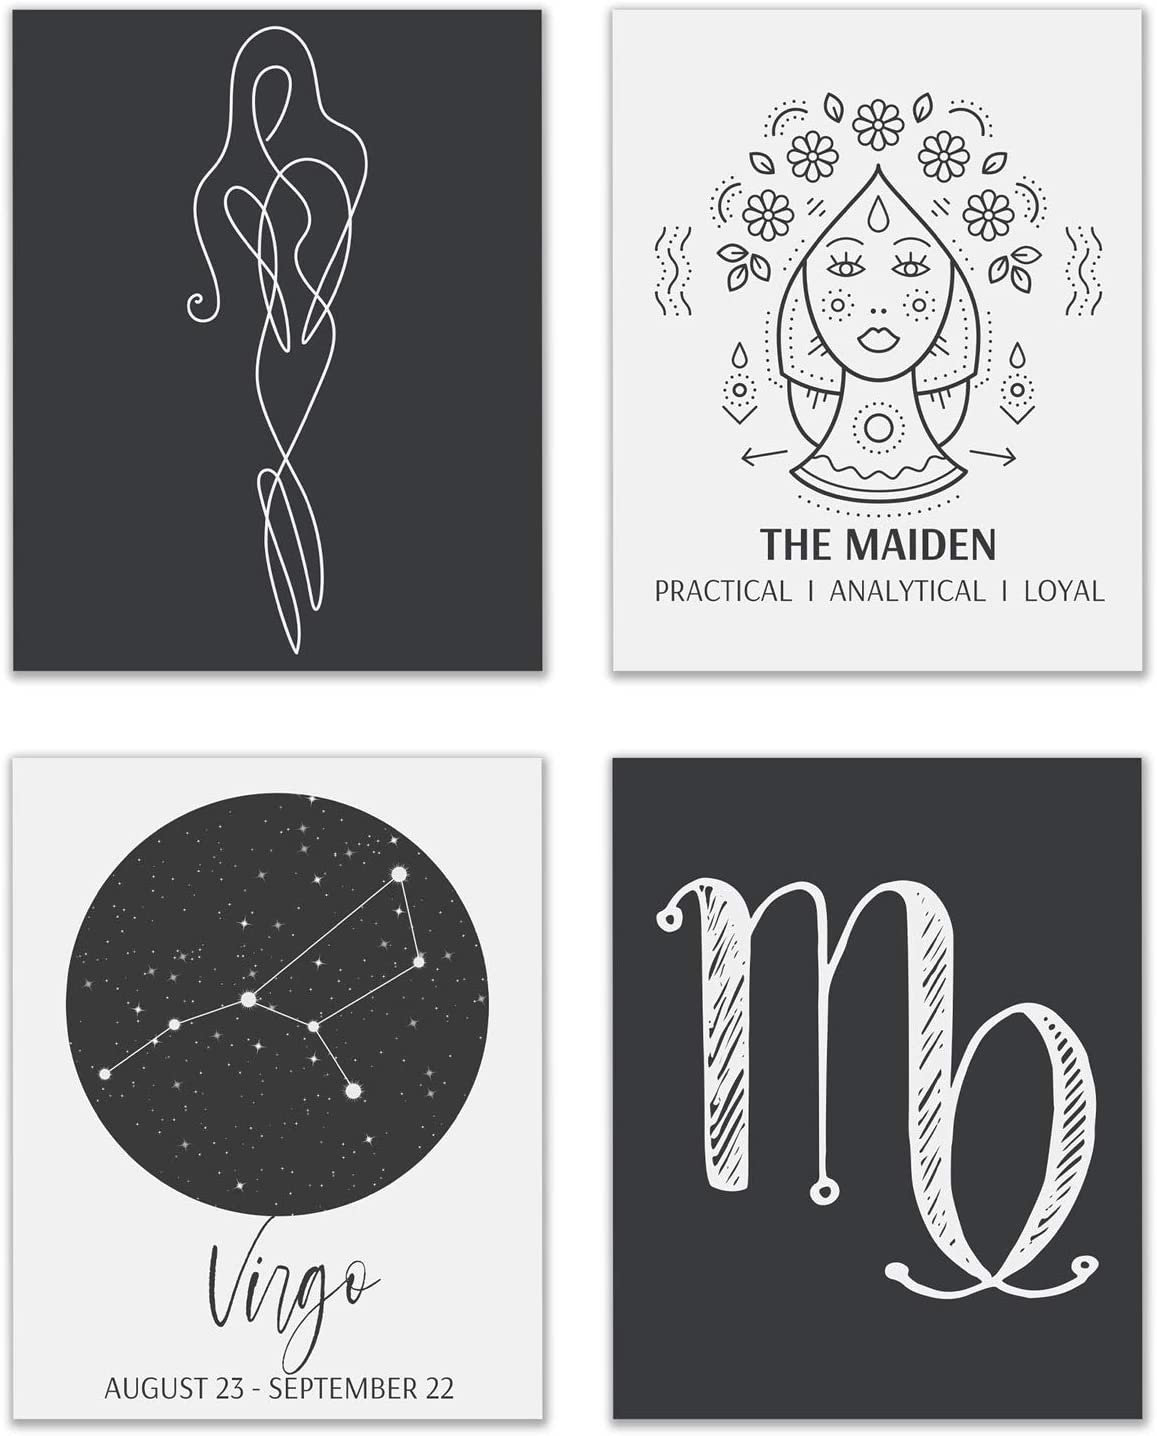 Virgo Astrological Sign Prints - Set of 4 (8x10 Inches) Zodiac Constellation Horoscope Star Sign Four Elements Wall Art Decor - The Maiden - Earth - Mutable - Mercury - Earth